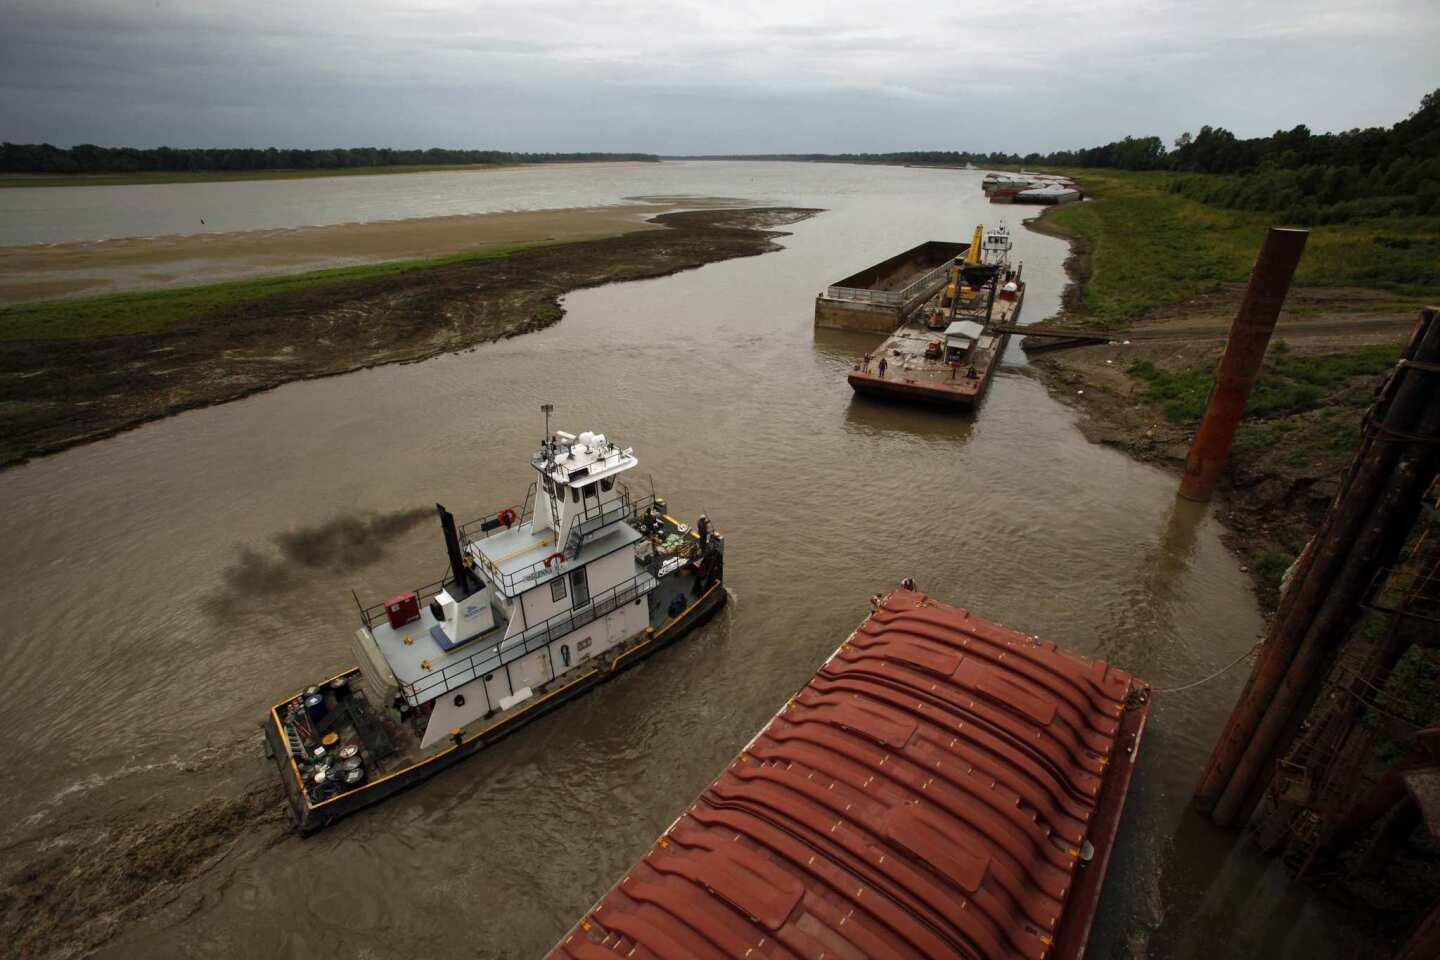 A sandbar no one has seen before appears in the Mississippi River at Lake Providence, La. Farmers are desperate to get their corn and soybeans shipped.